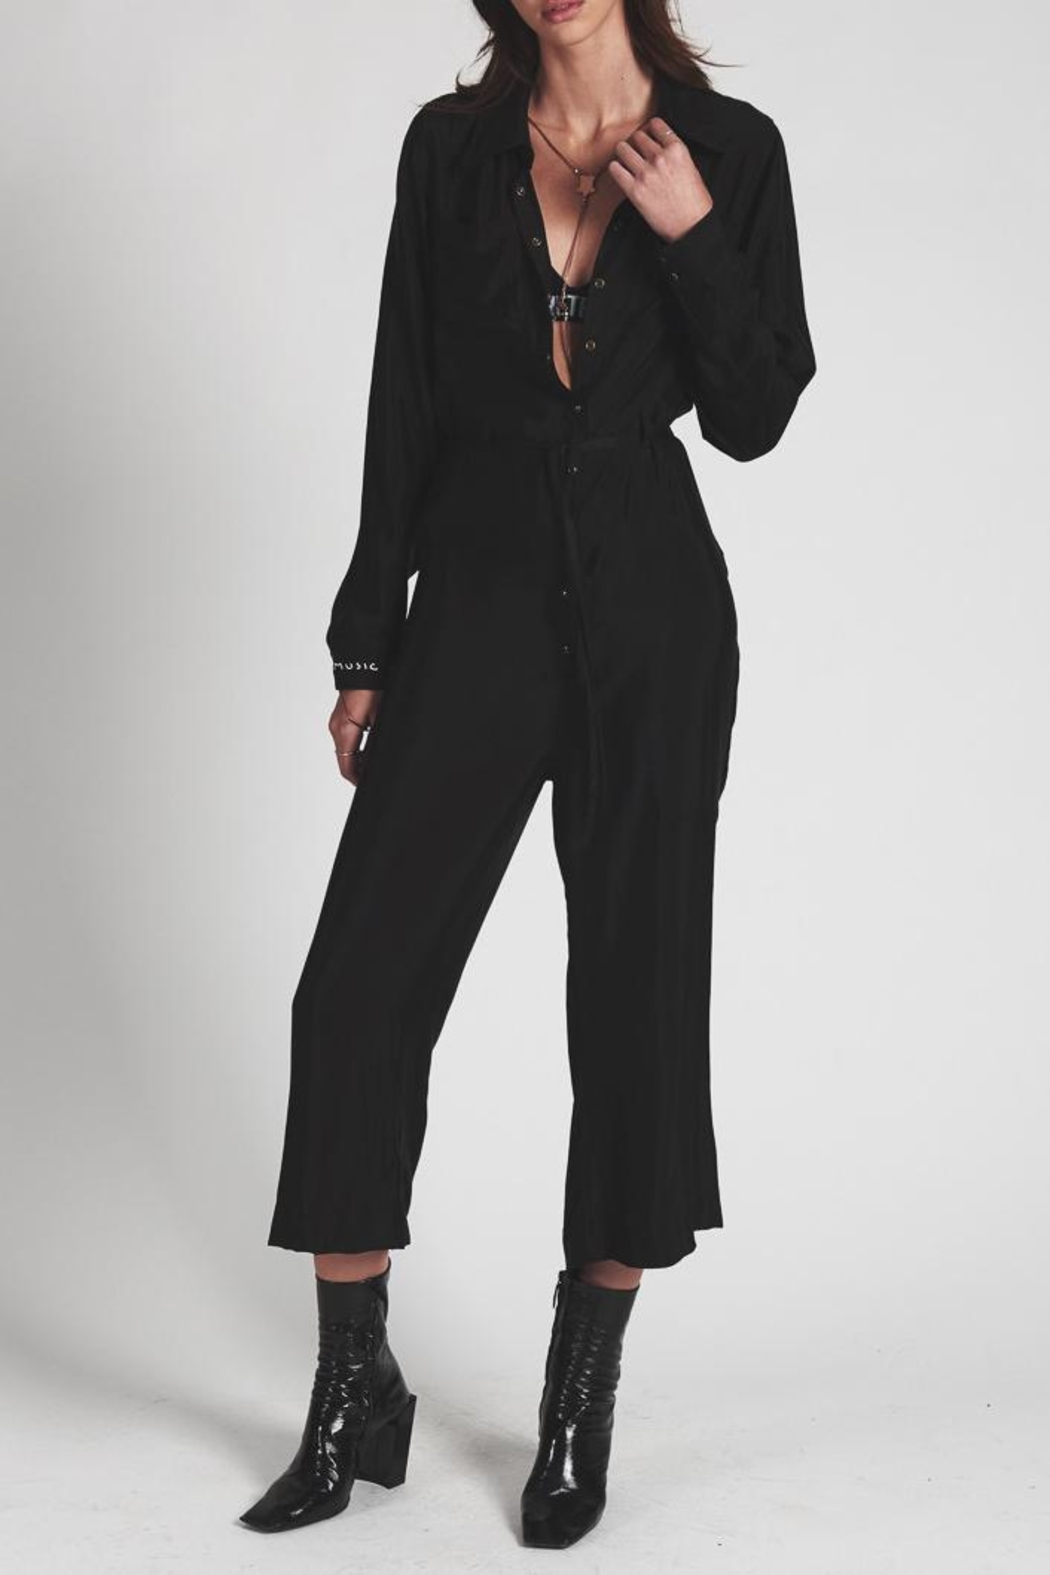 One Teaspoon Bad Valentine Jumpsuit - Front Cropped Image